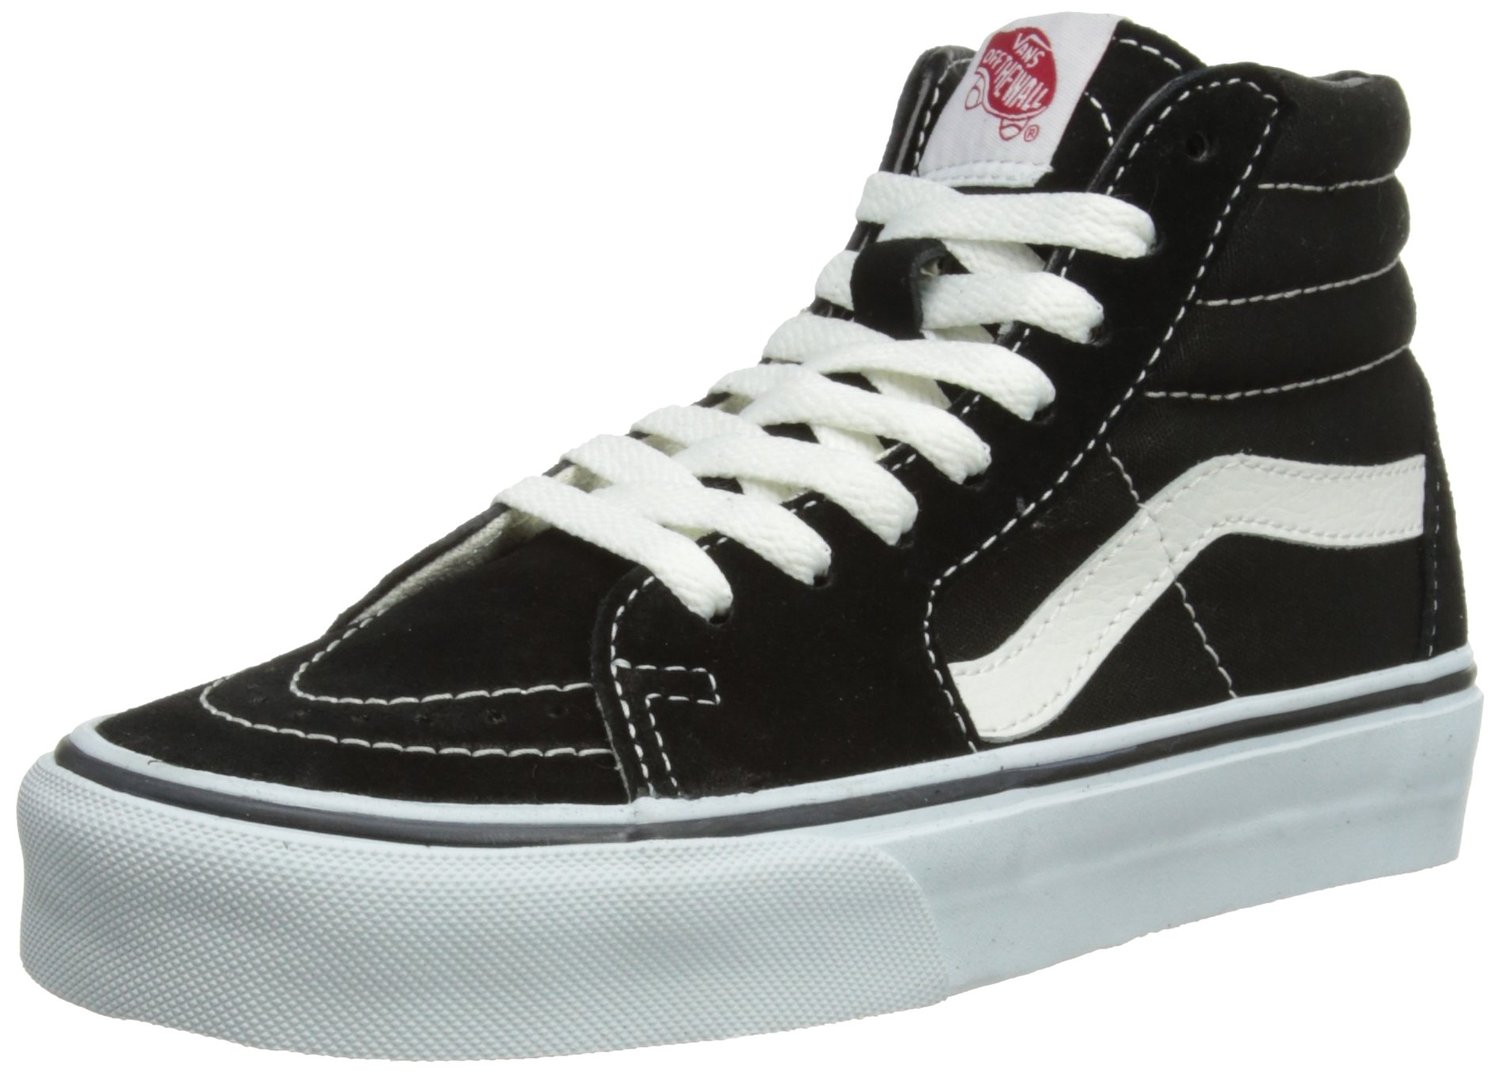 81e9a9c422 Get Quotations · Vans Men s Sk8-Hi MTE Skate Shoe